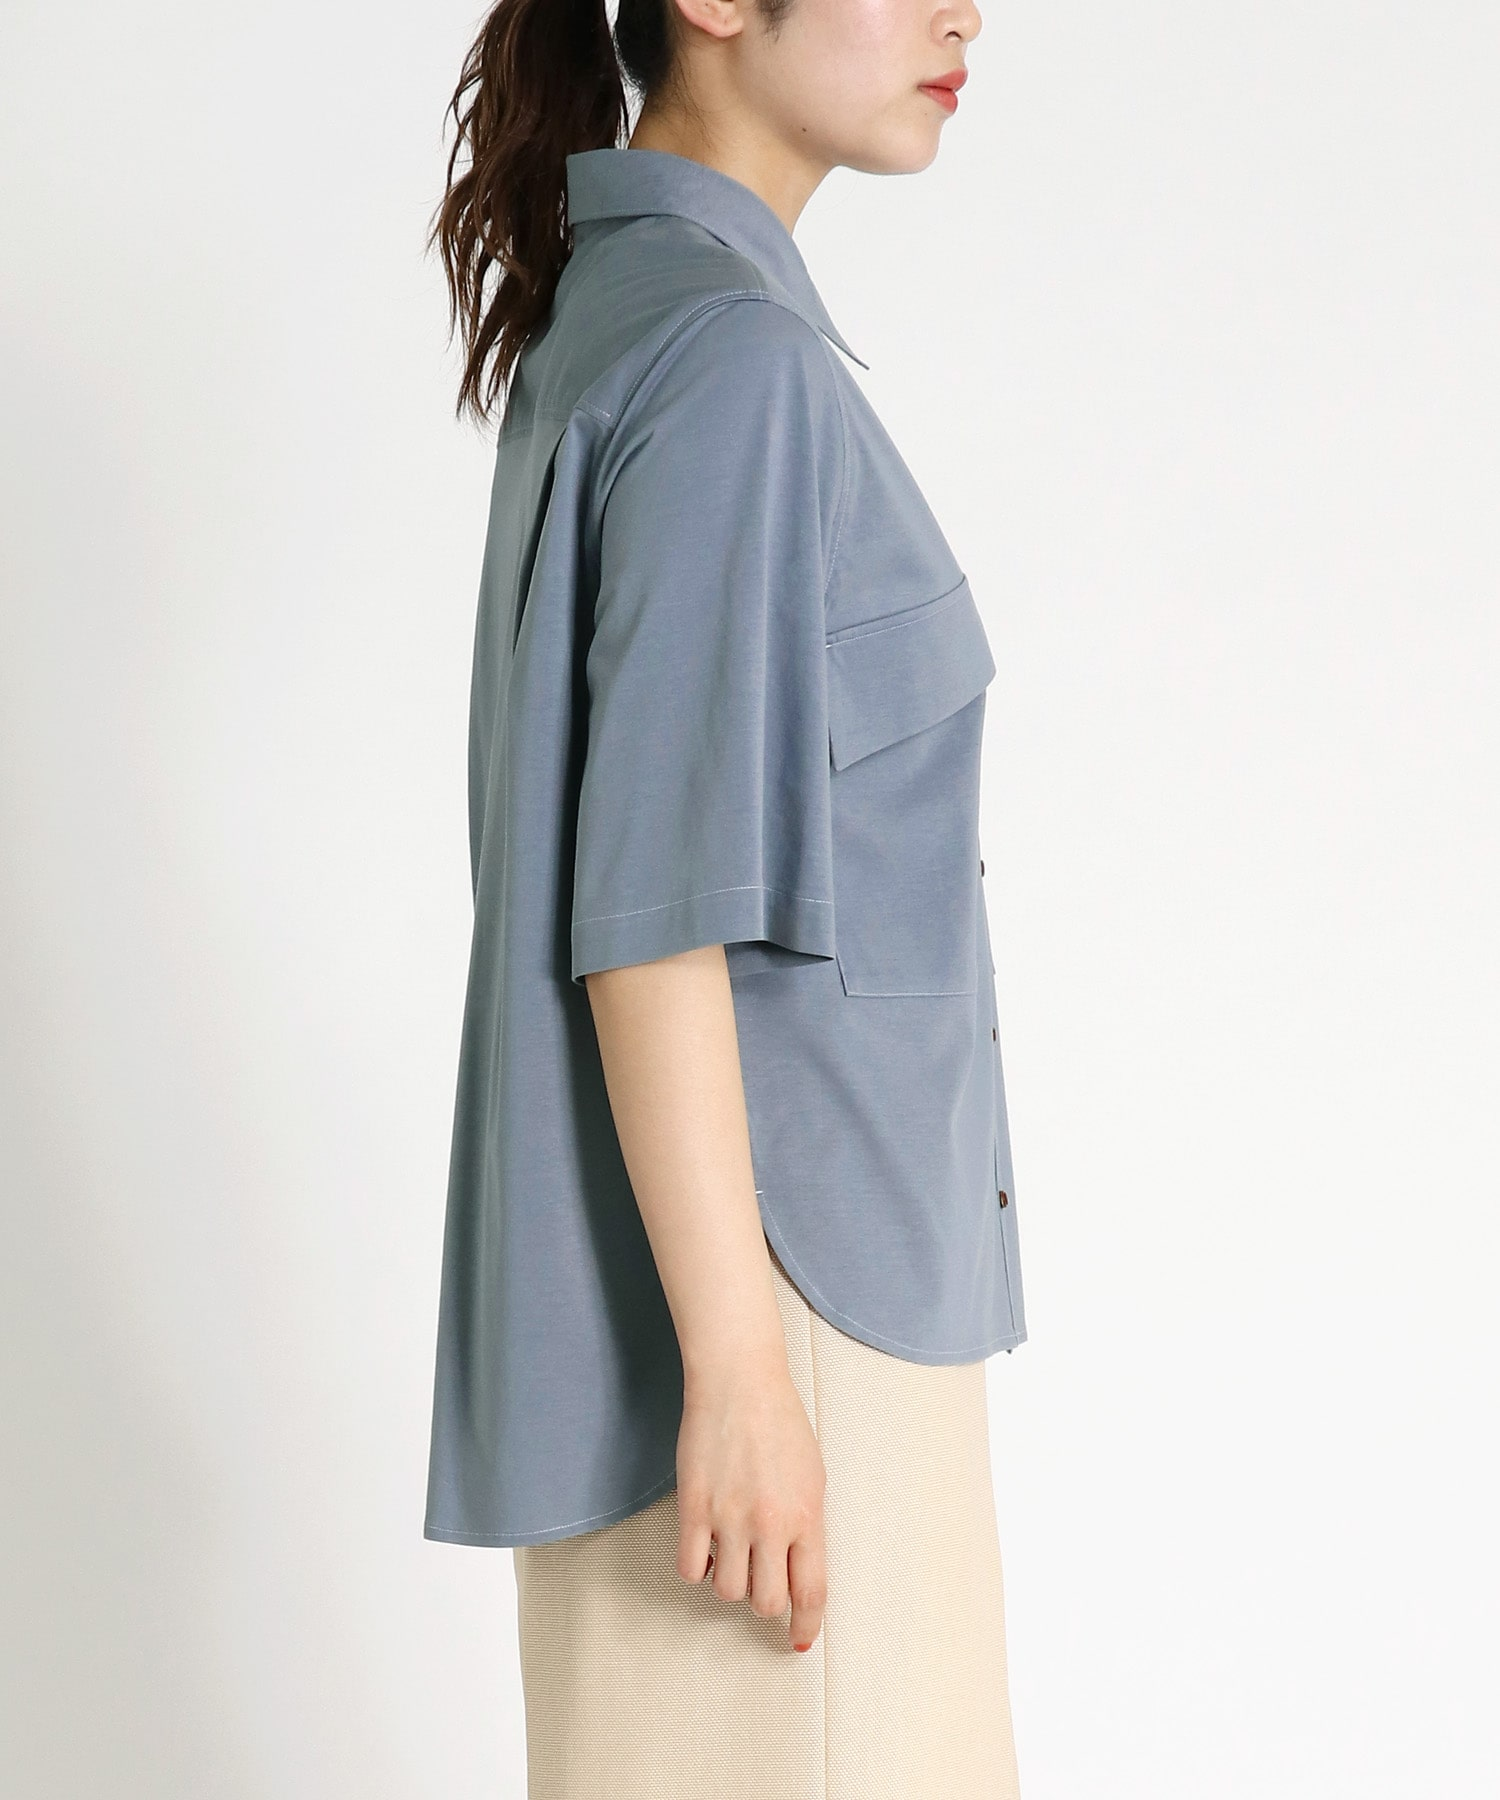 classic callor big pocket shirt